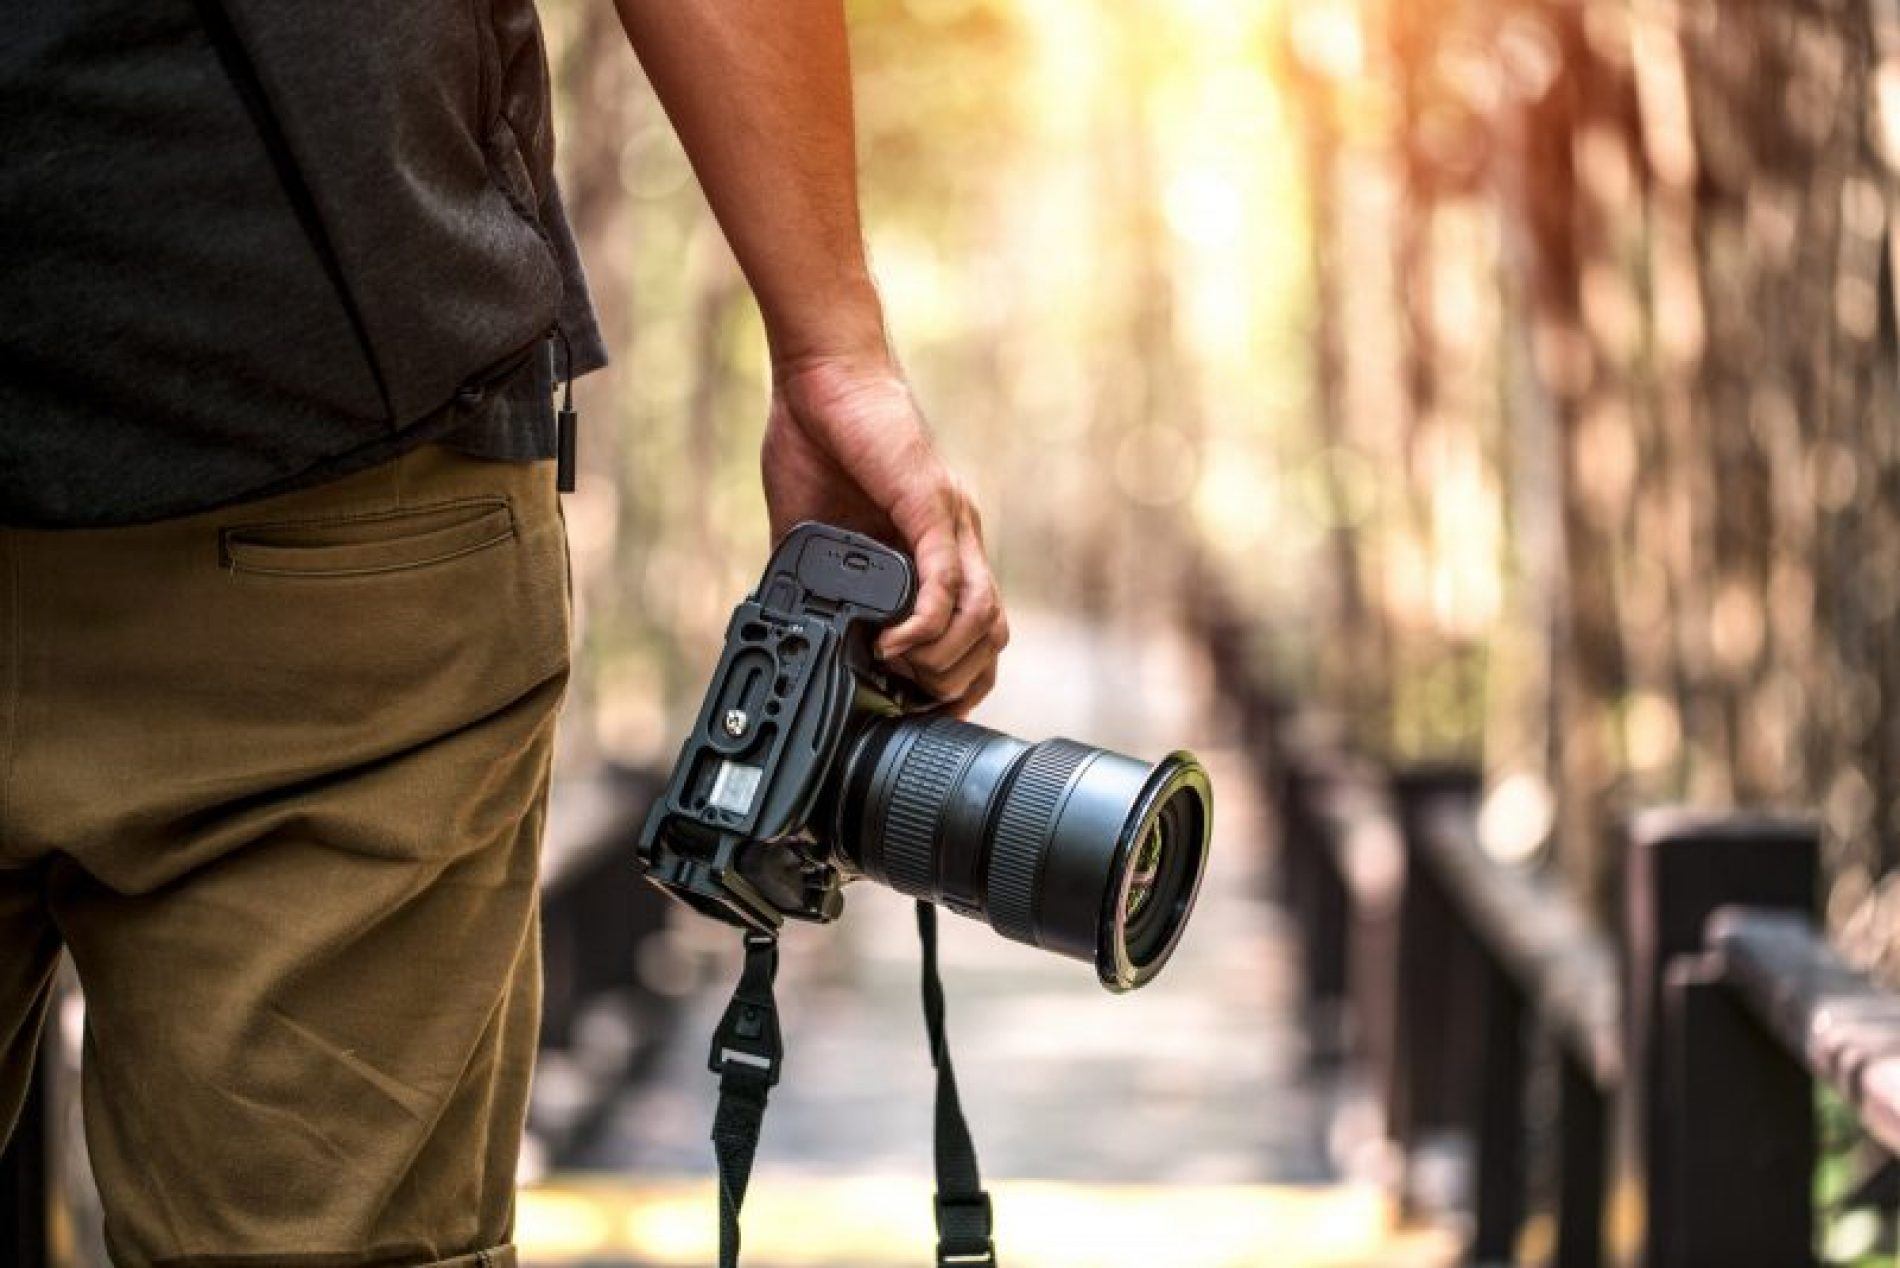 Choose the most professional photographer for your wedding